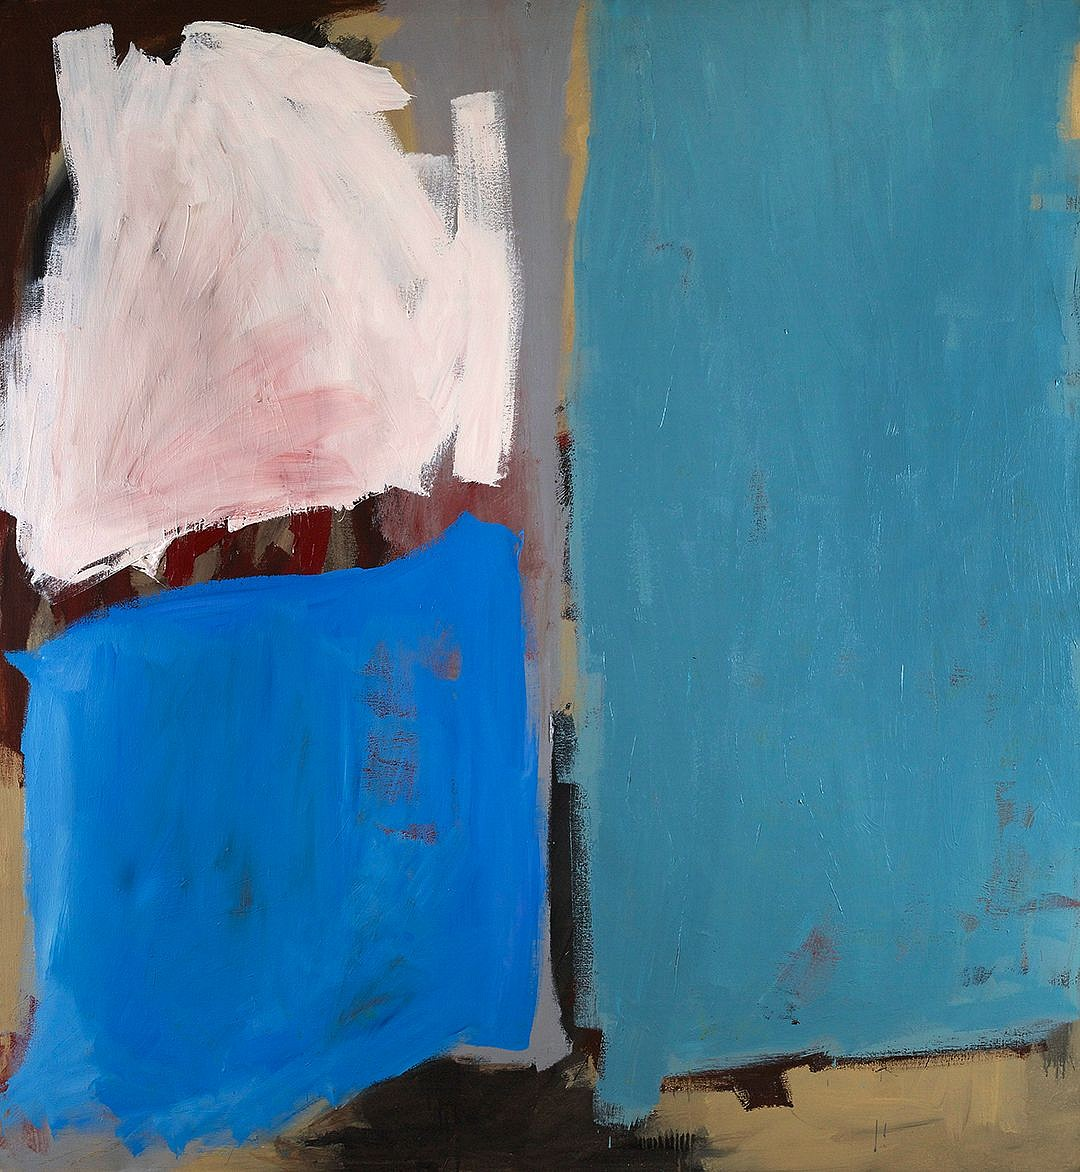 PRESS RELEASE: Ann Purcell | Paintings from the 1970s, Jan  8 - Feb  7, 2015